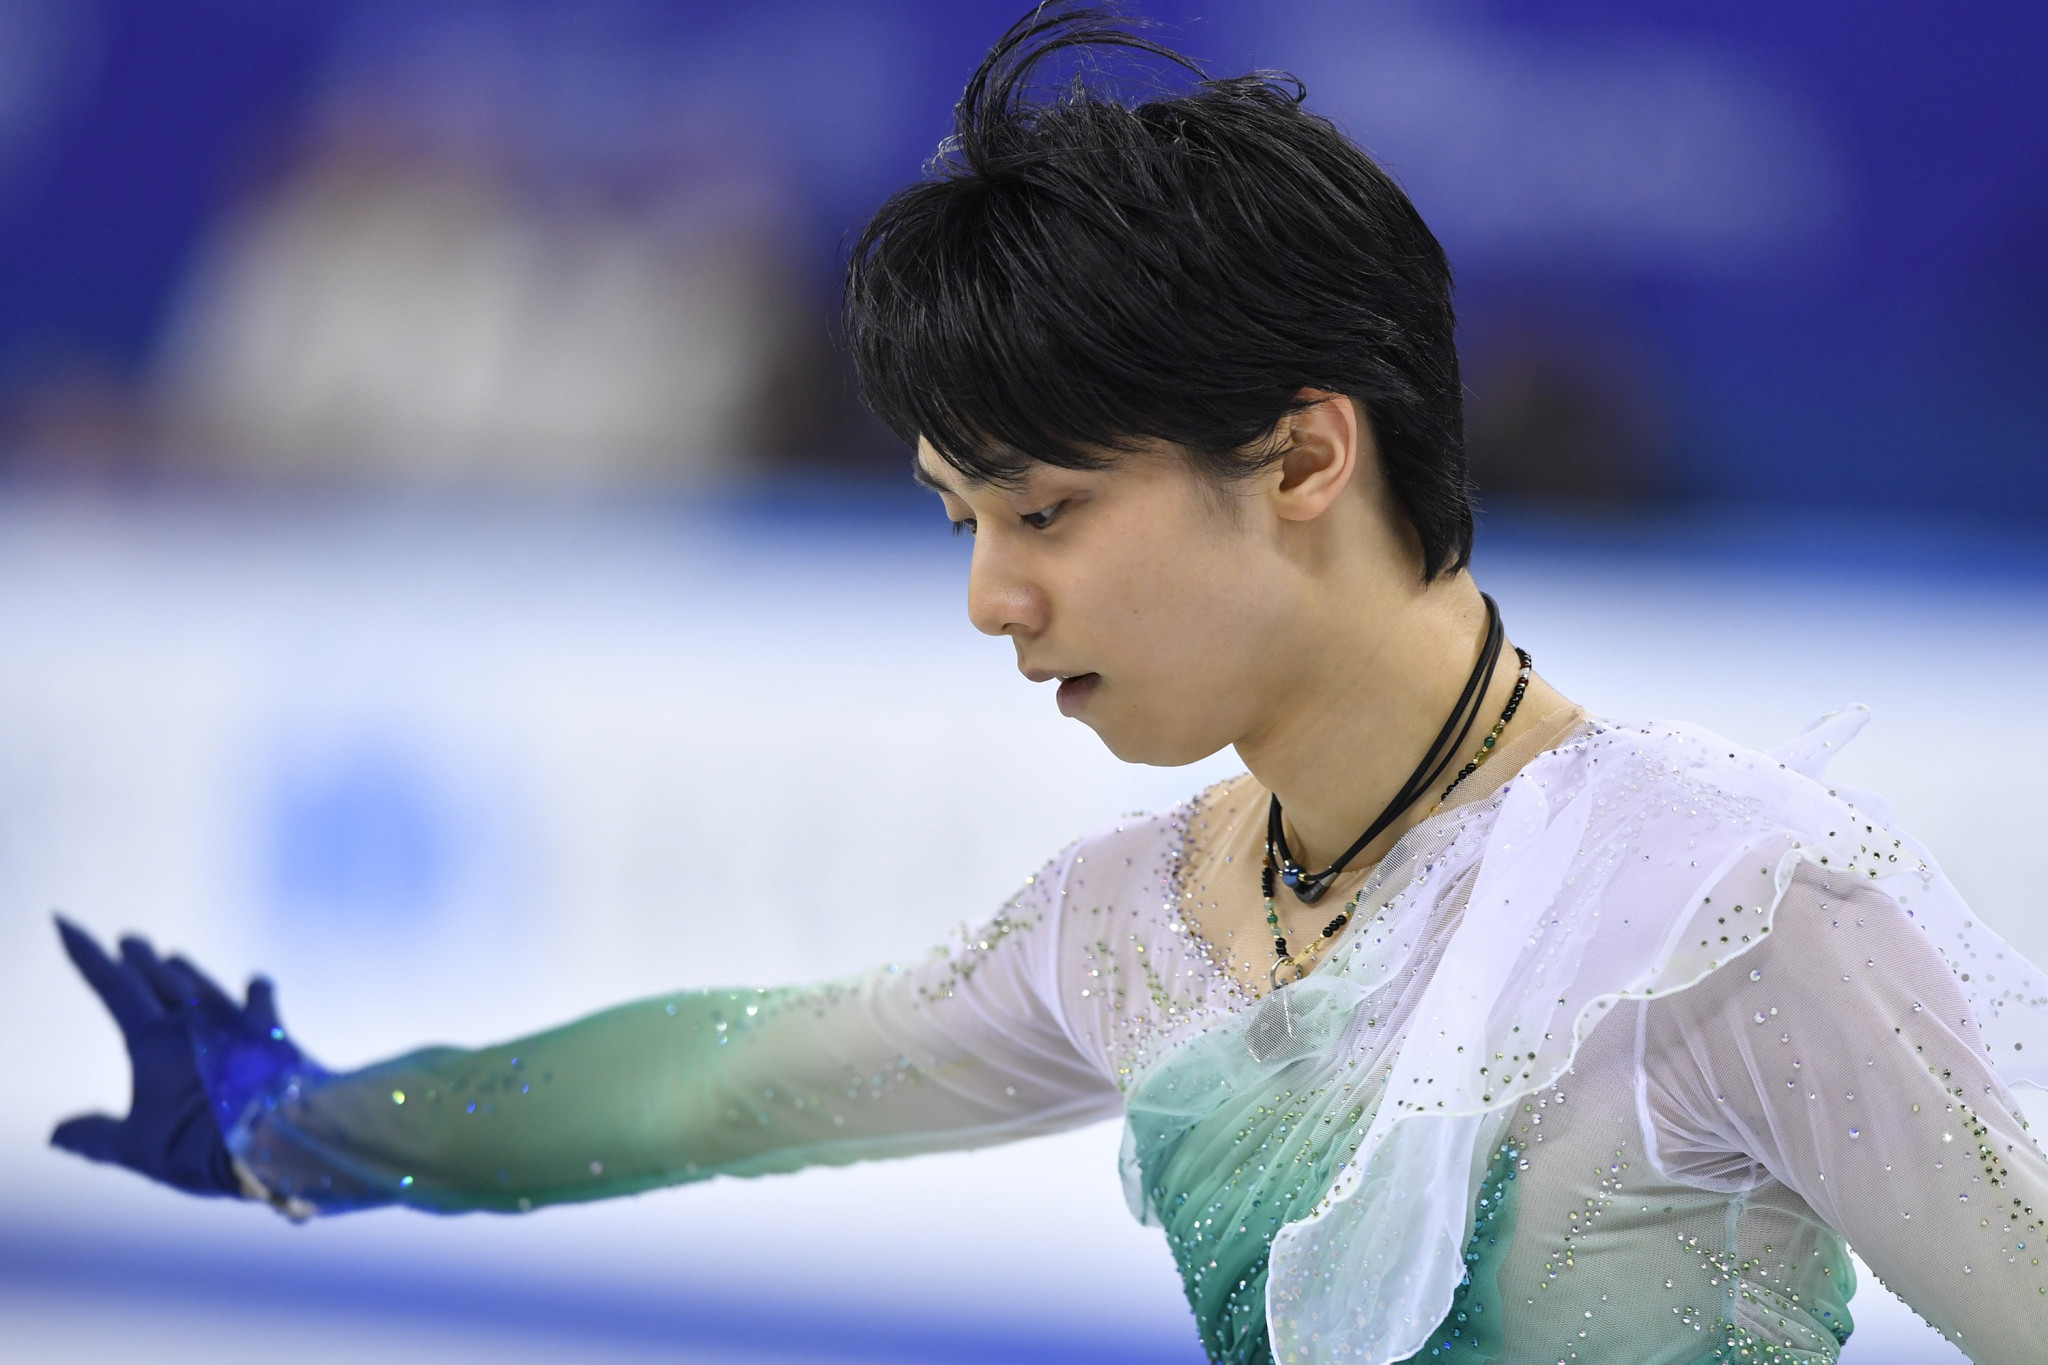 Reigning Olympic and world champion Yuzuru Hanyu's participation is now in doubt at the ISU Grand Prix of Figure Skating event in the Japanese city of Osaka ©Getty Images